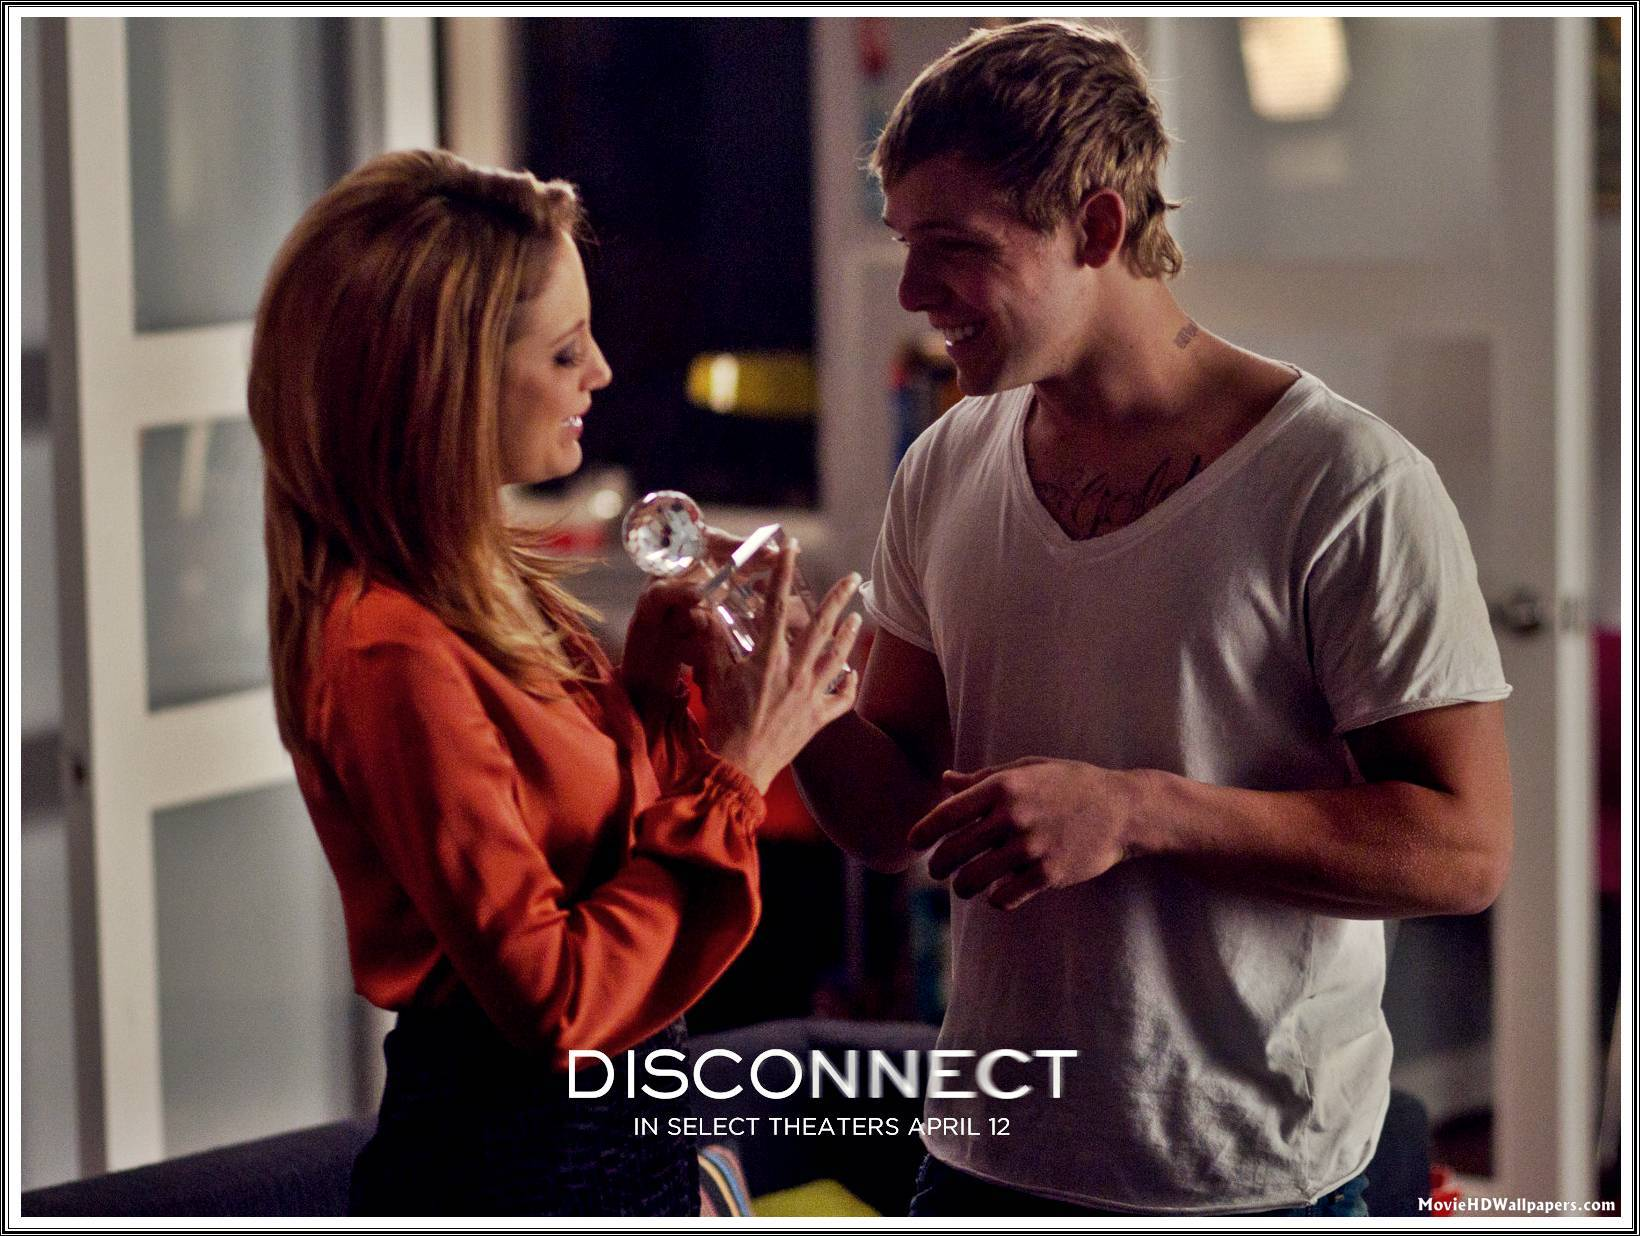 Disconnect (2013) Film | Movie HD Wallpapers